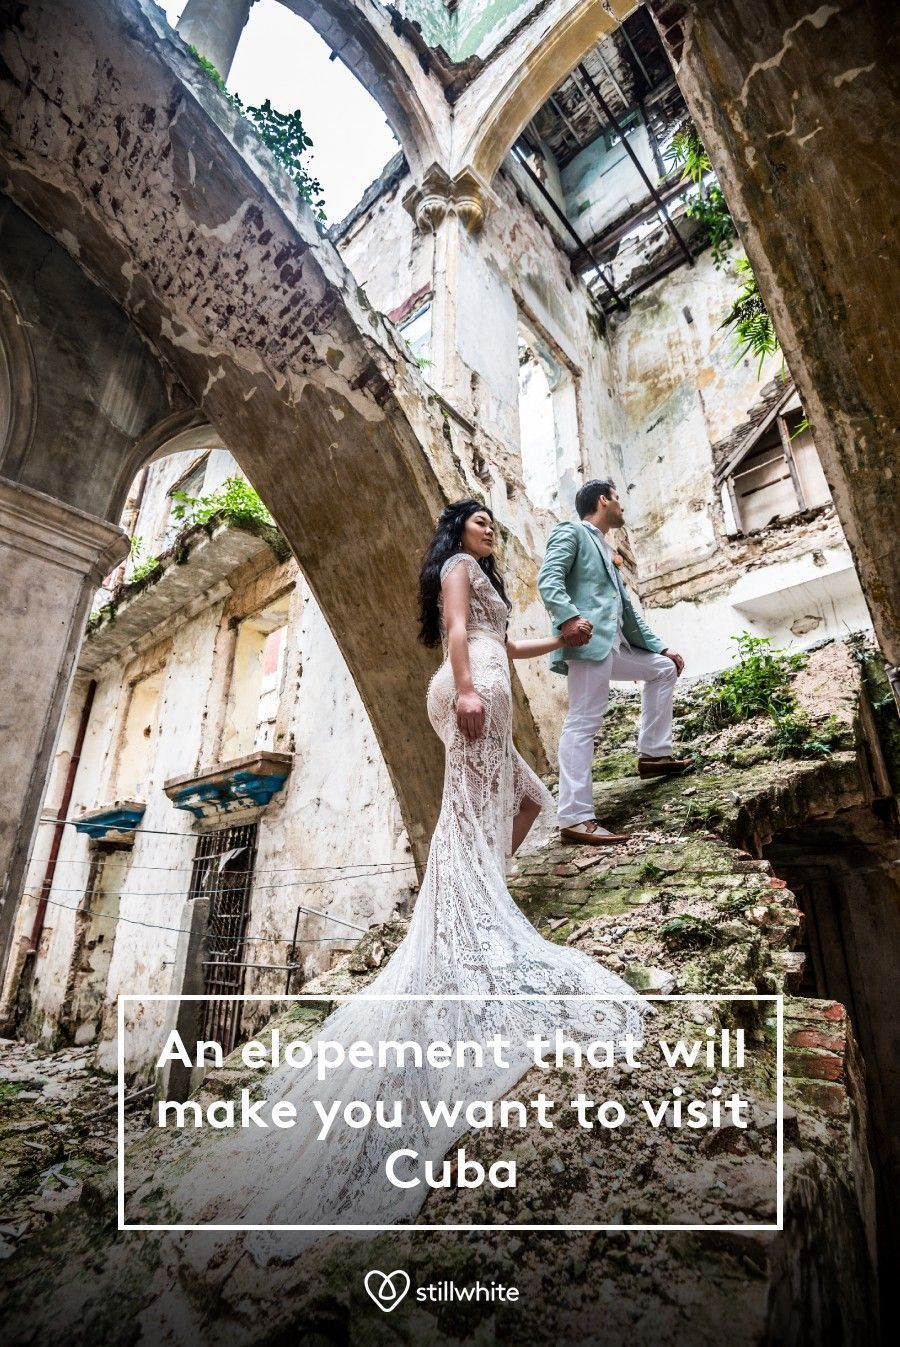 An elopement that will make you want to visit Cuba #visitcuba An elopement that will make you want to visit Cuba - The Stillwhite Blog - Stillwhite #visitcuba An elopement that will make you want to visit Cuba #visitcuba An elopement that will make you want to visit Cuba - The Stillwhite Blog - Stillwhite #visitcuba An elopement that will make you want to visit Cuba #visitcuba An elopement that will make you want to visit Cuba - The Stillwhite Blog - Stillwhite #visitcuba An elopement that will #visitcuba